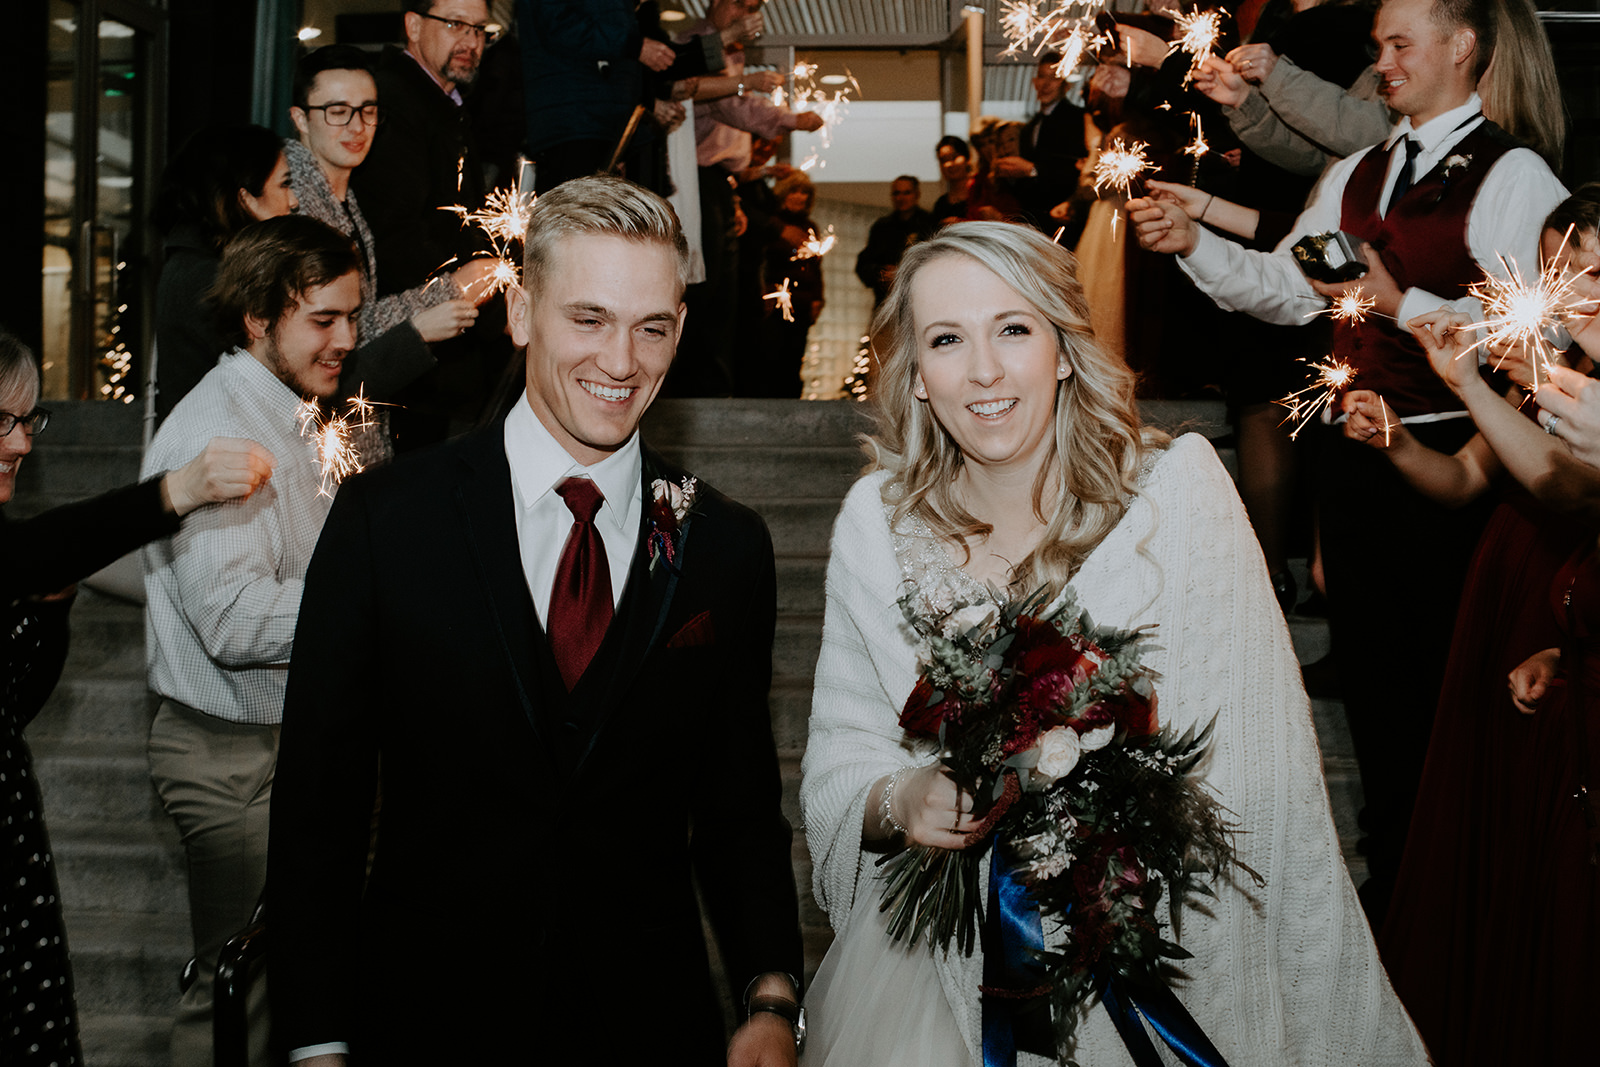 Smiling bride and groom walking down steps while guests hold sparklers during exit from Two Rivers Convention Center in Grand Junction